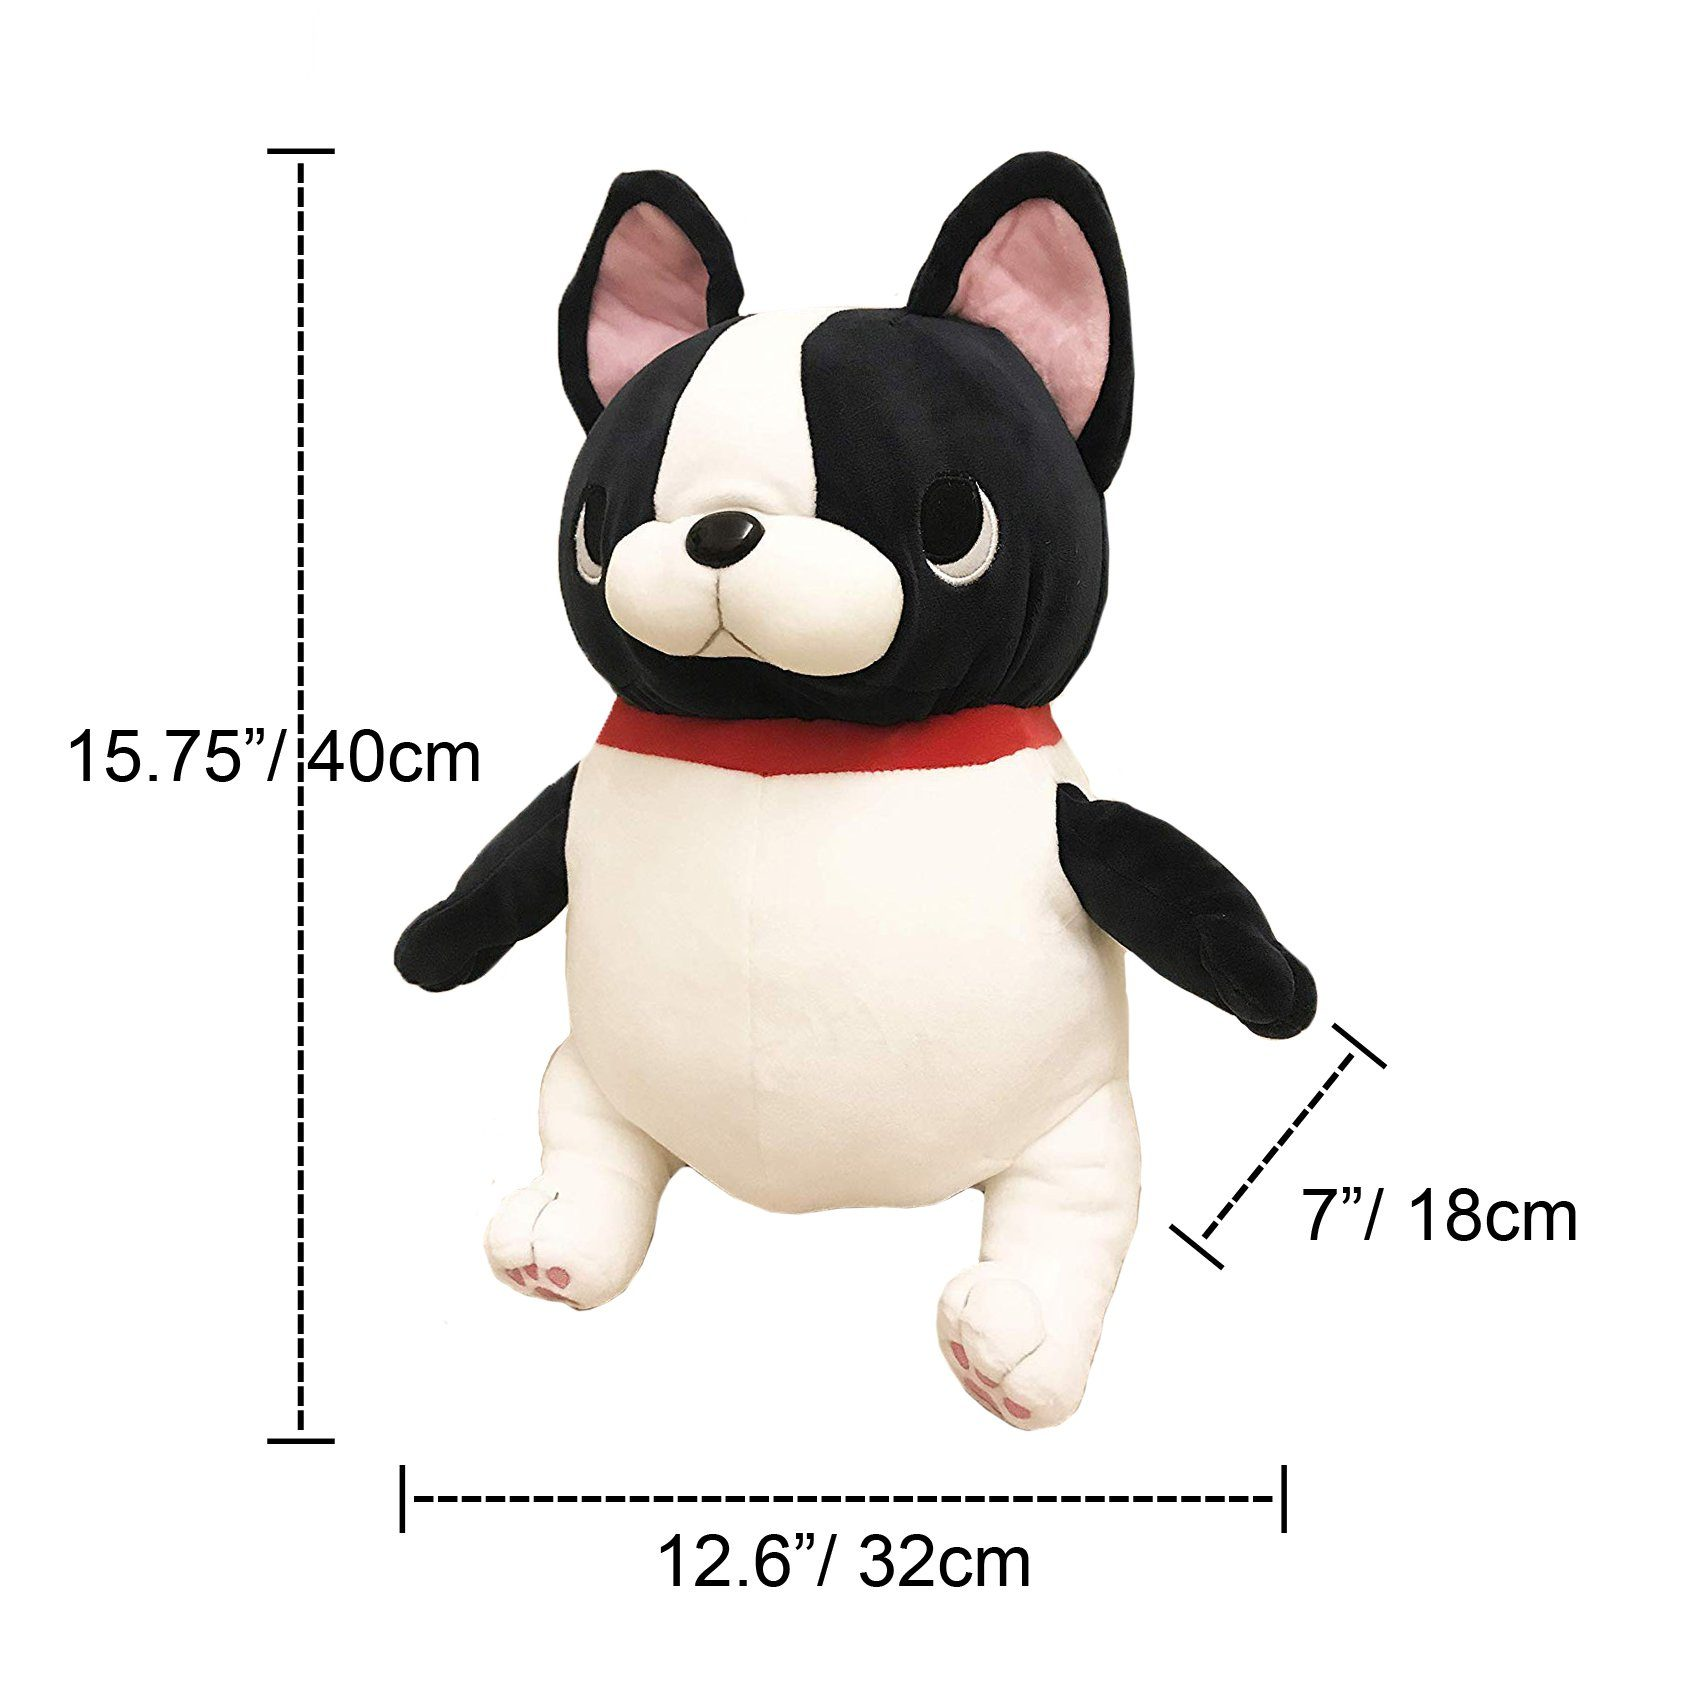 French Bulldog Stuffed Toy DOLL Black White with Red Collar Accessory Super Soft pet New Collection Frenchic